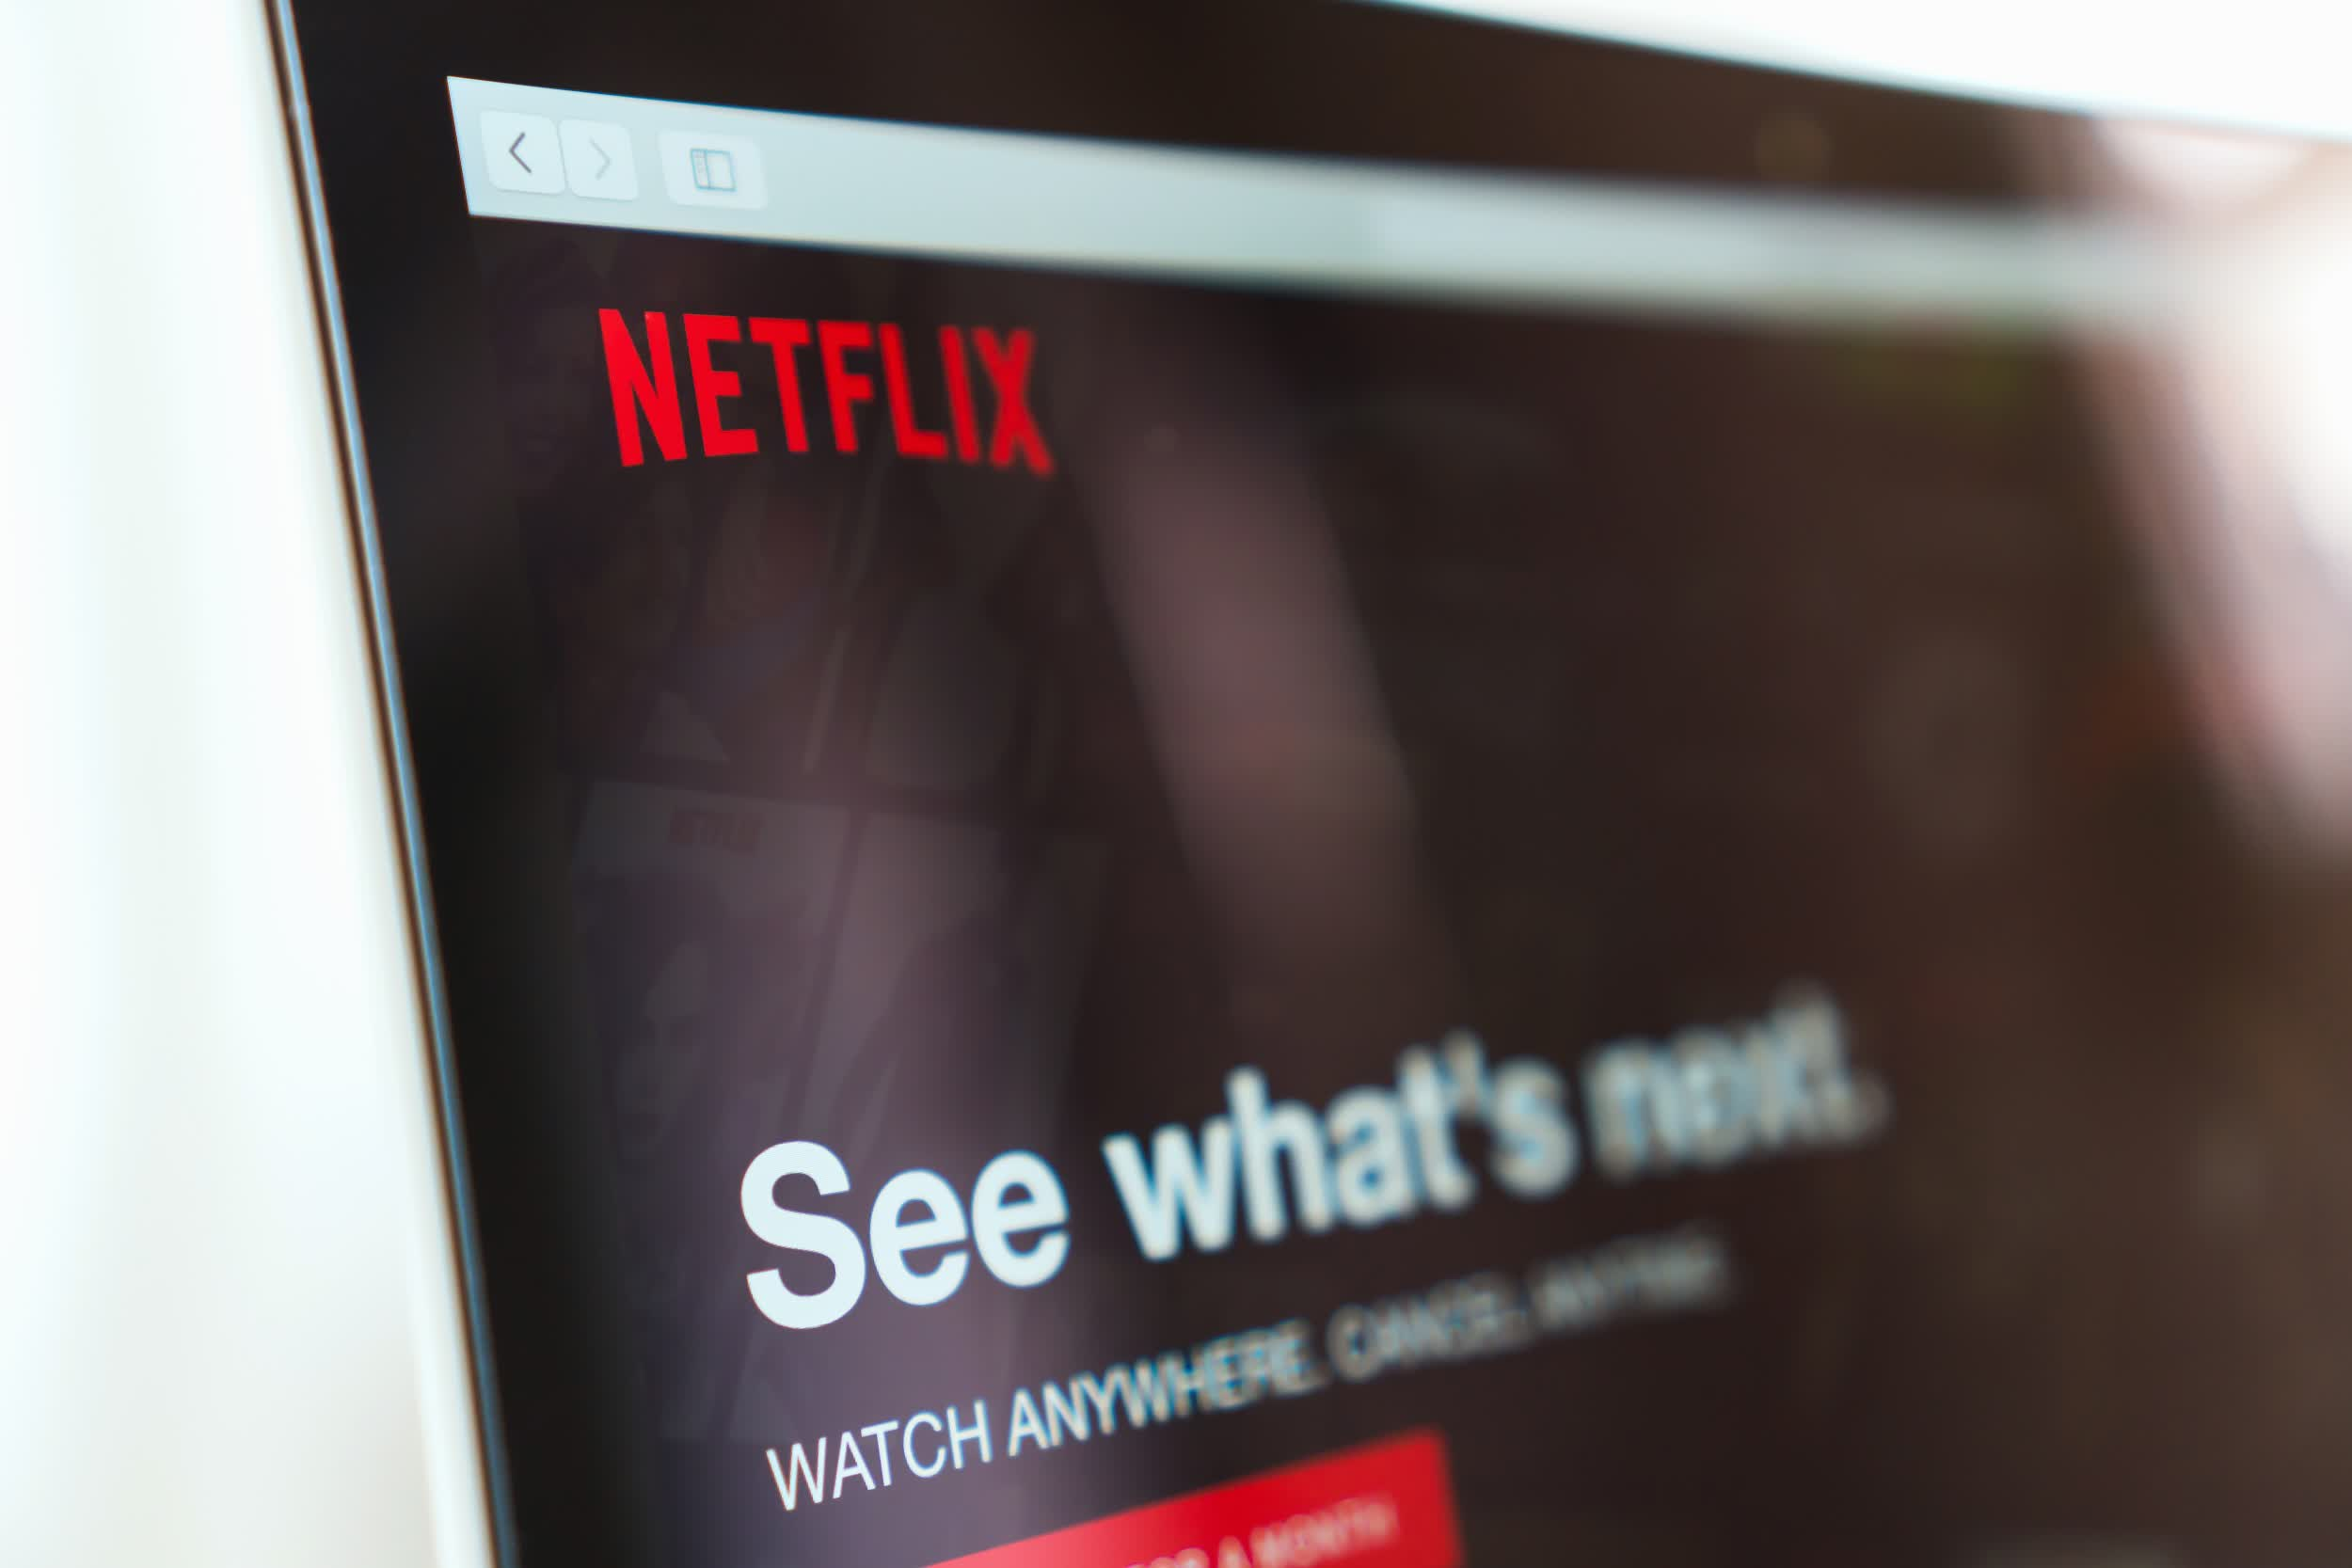 Netflix will release at least one new movie every week in 2021